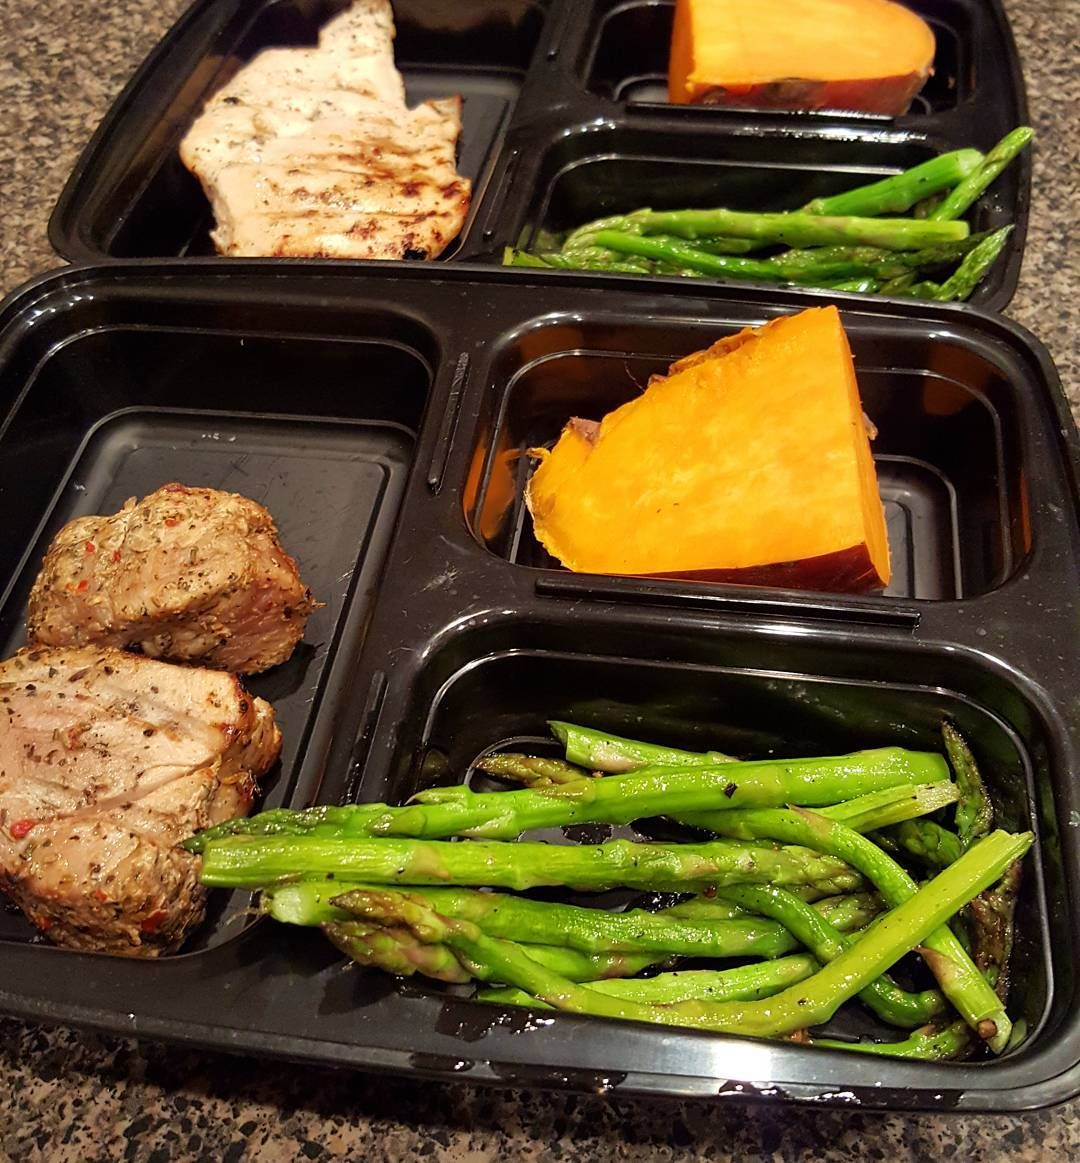 And a little mini meal prep done! #eatclean #mealprep #planforsuccess #mealprepsunday #whole30alumni #itstartswithfood